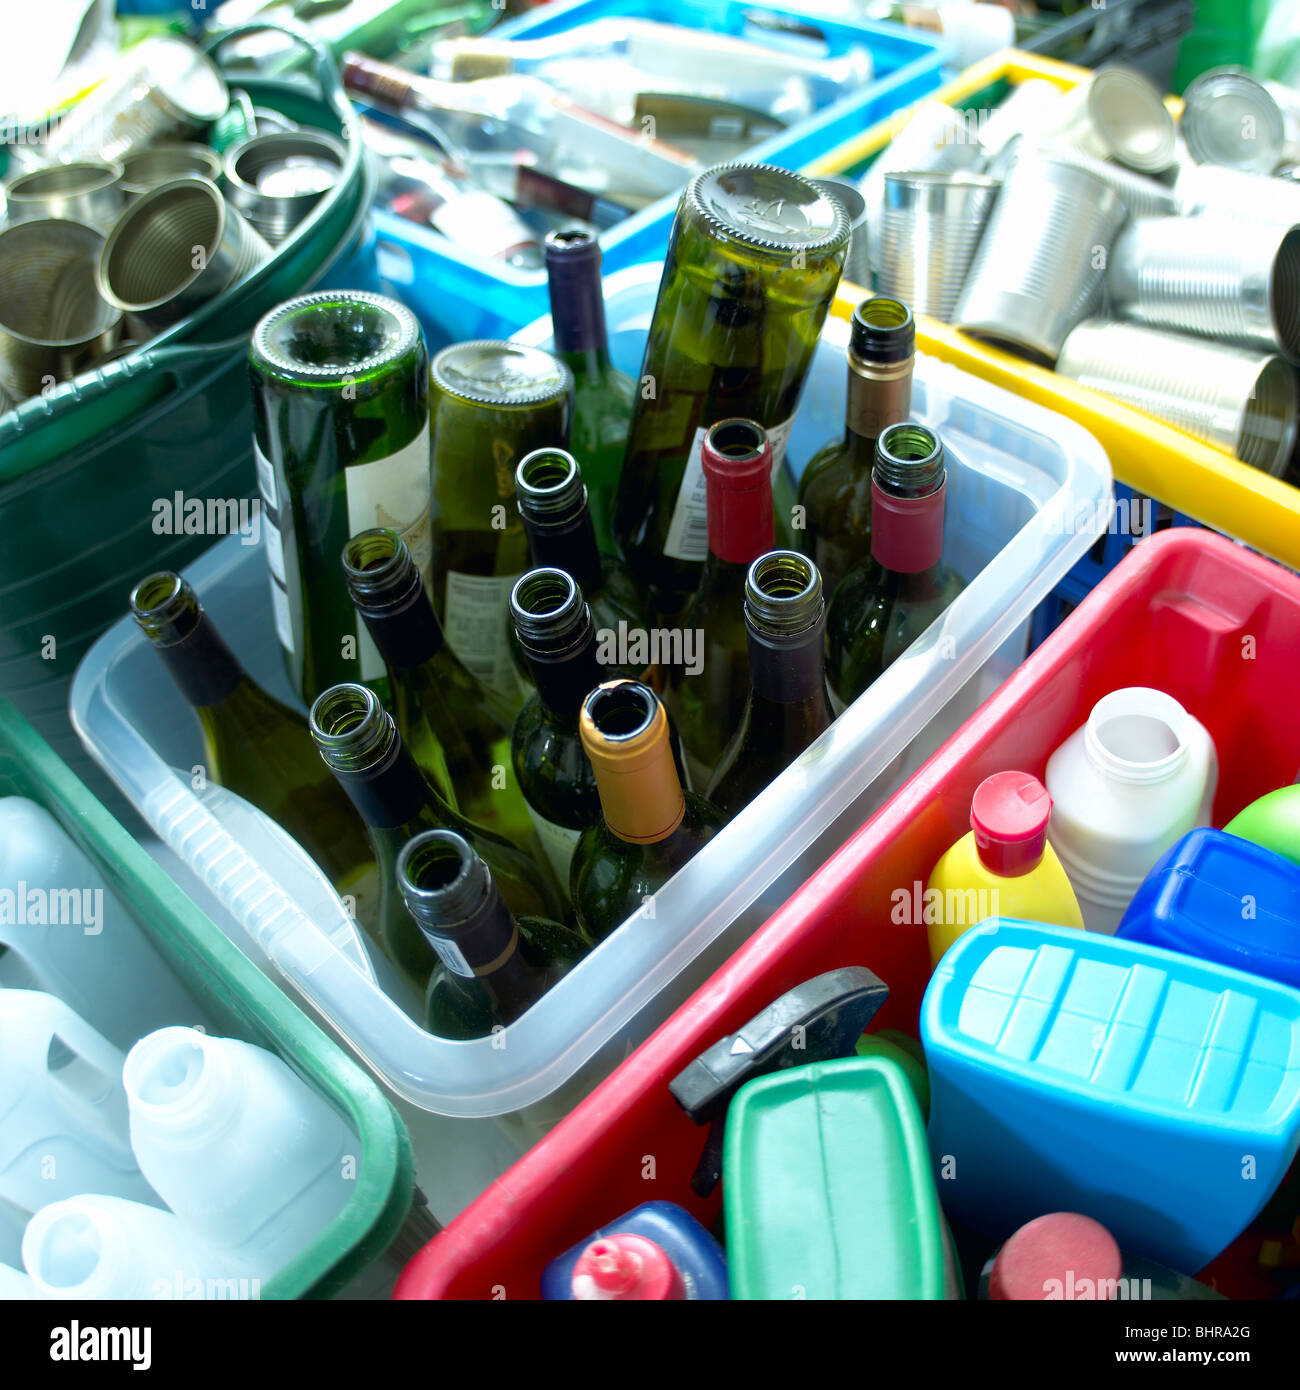 Recycling articles in boxes - Stock Image